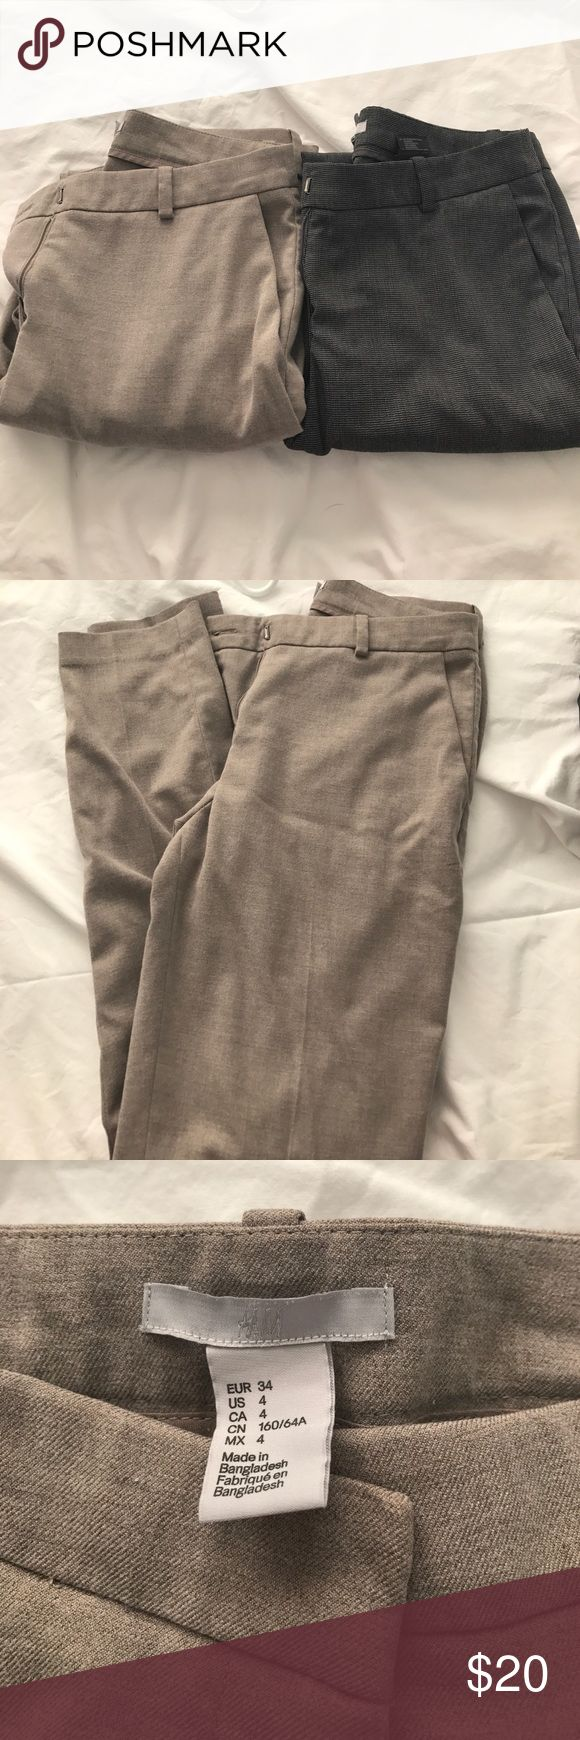 !!2 for 1!! H&M Straight Legged Trousers Two pairs of H&M straight legged dress pants. Size 4. One pair is a light beige color and one pair has a small black and white design. H&M Pants Straight Leg